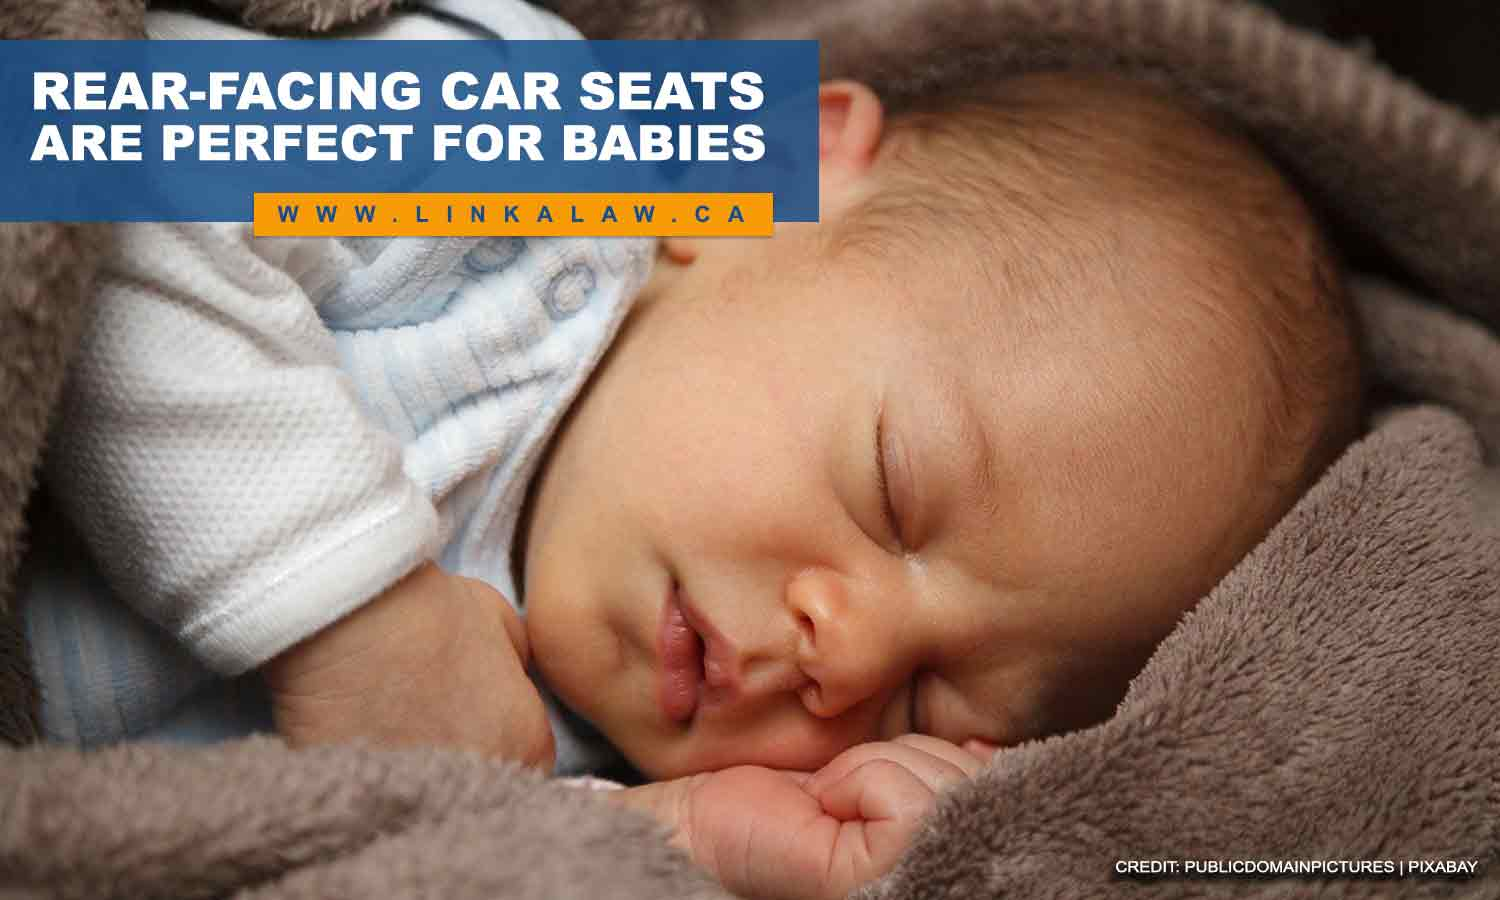 Rear-facing car seats are perfect for babies